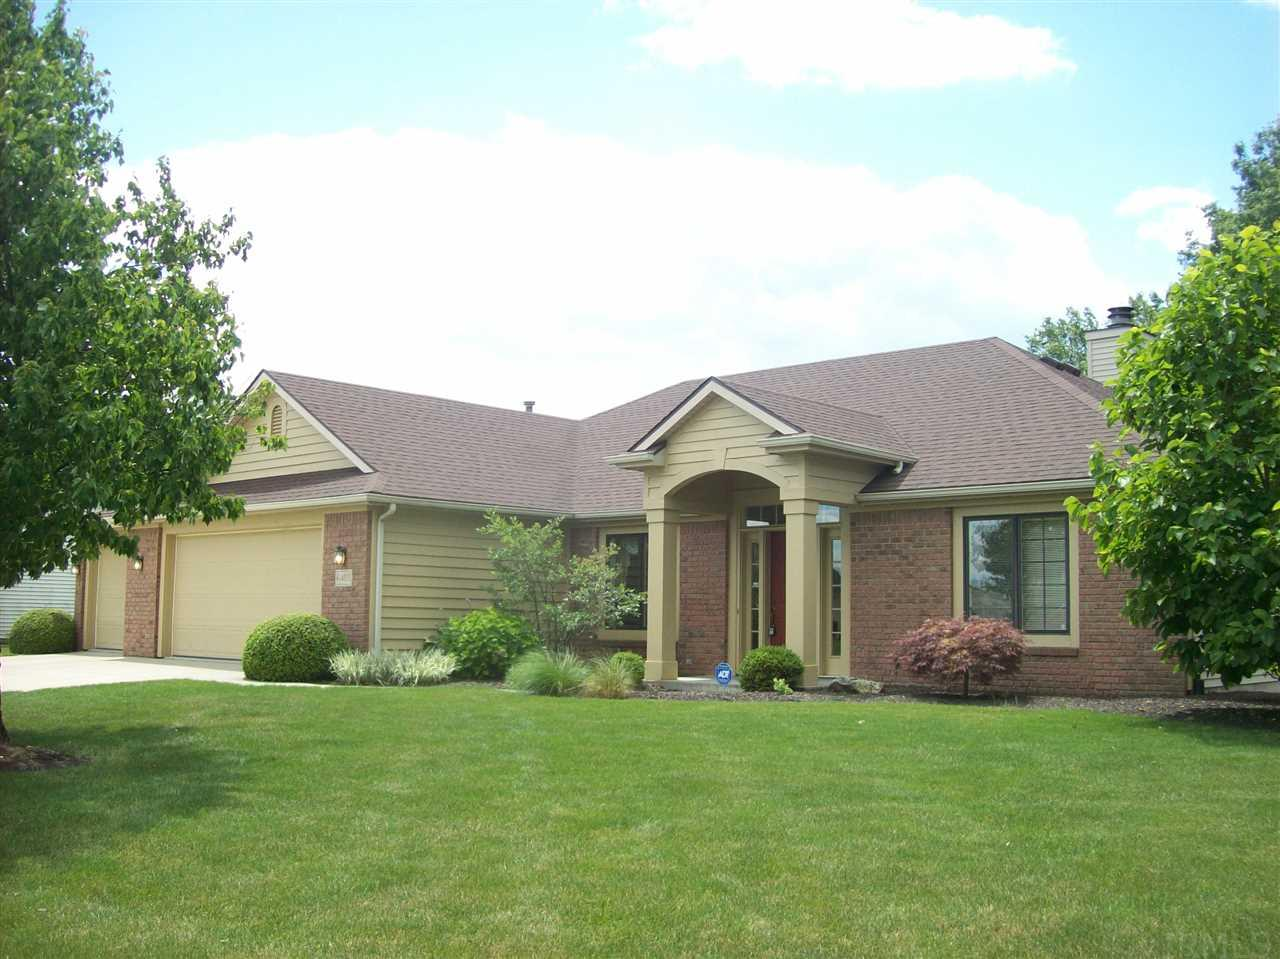 6403 Cherry Hill, Fort Wayne, IN 46815